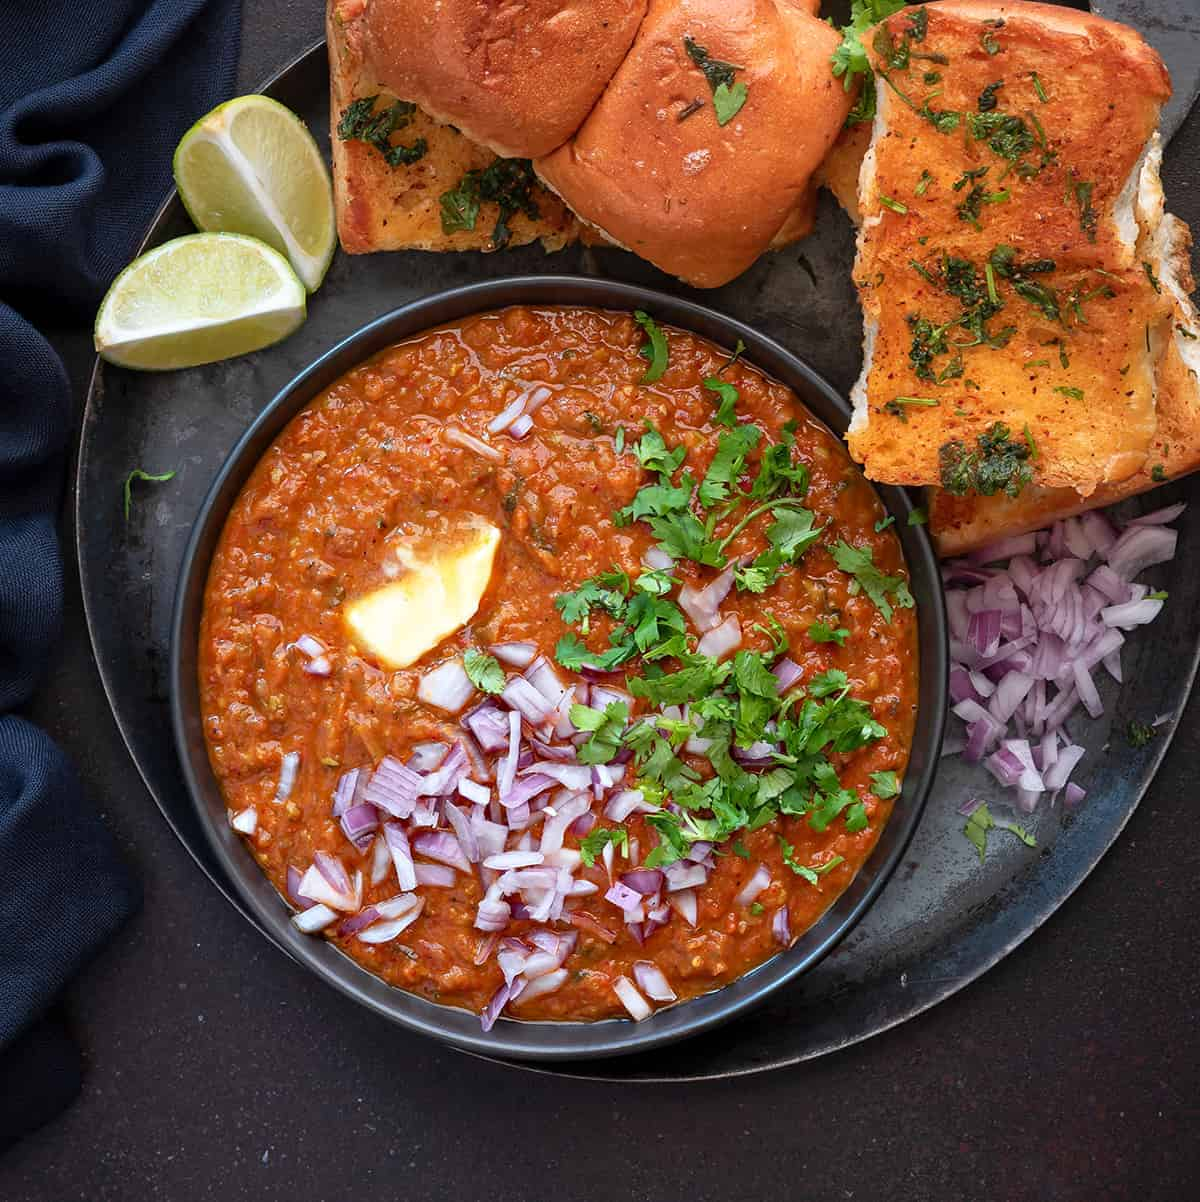 Mumbai Pav bhaji served in black plate with toasted buns, lemon wedges and chopped onions.